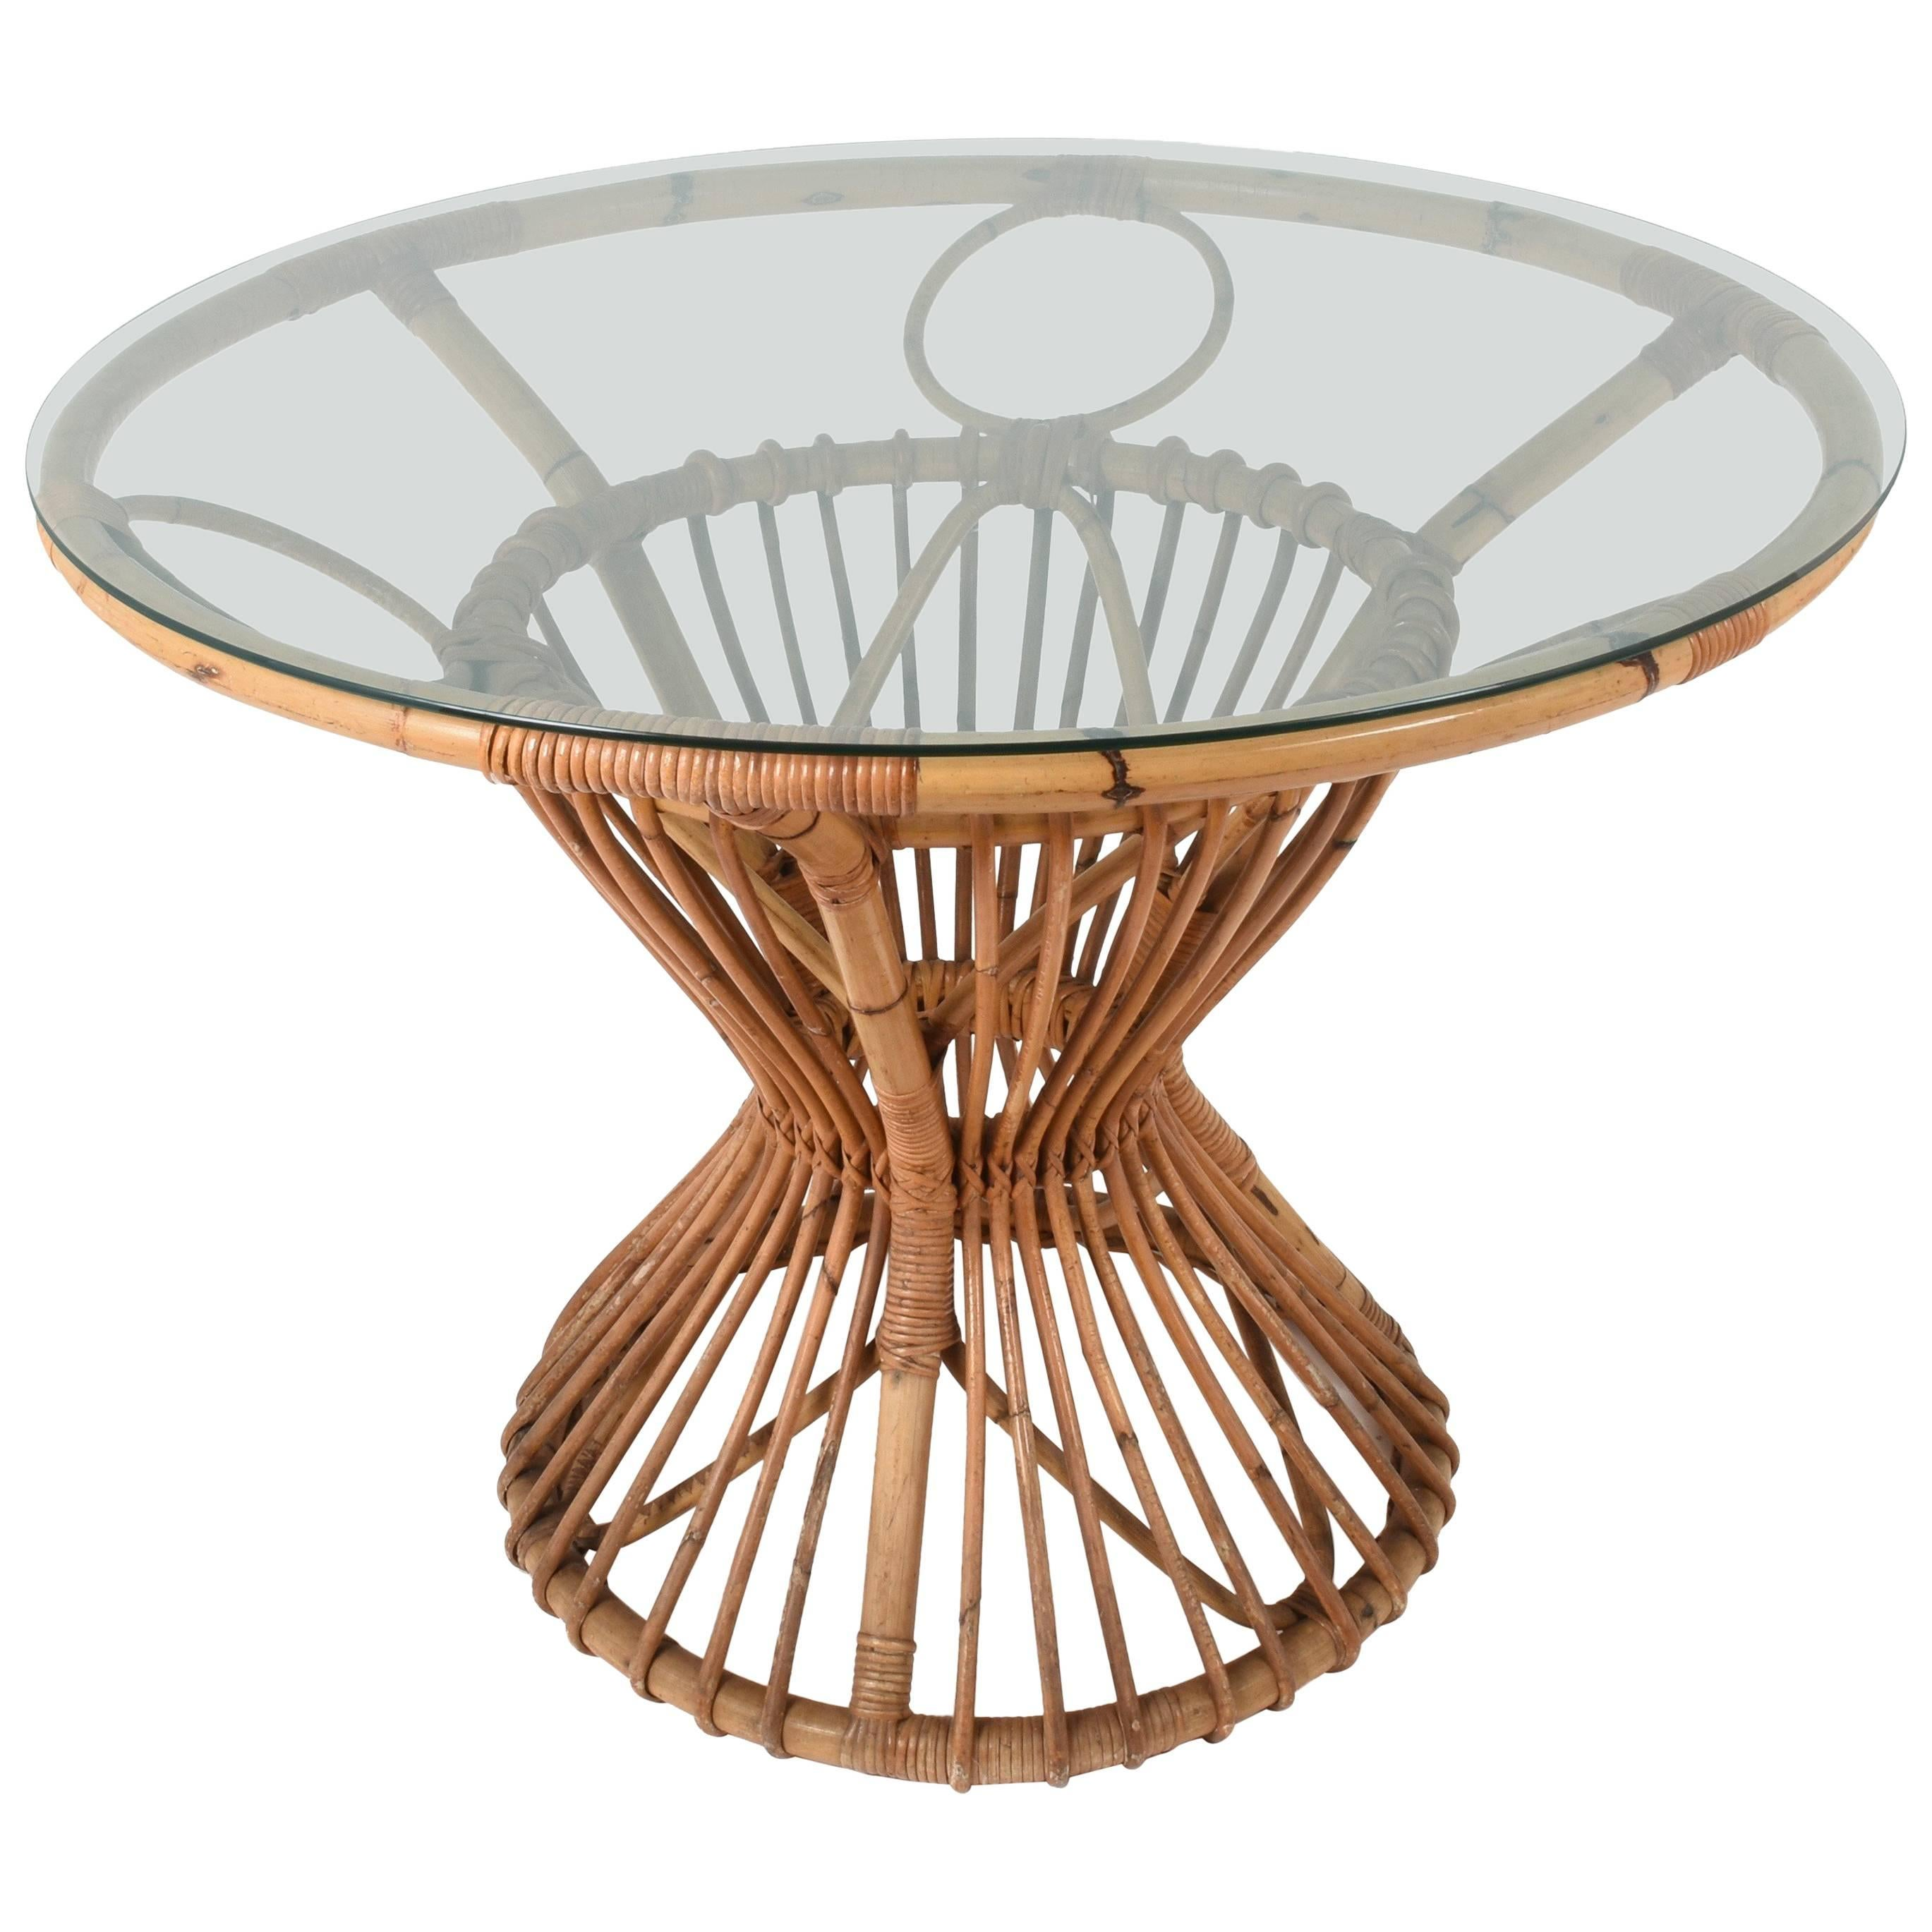 Rattan Table Bamboo And Rattan Table Suitable For Franco Albini Italy 1960s